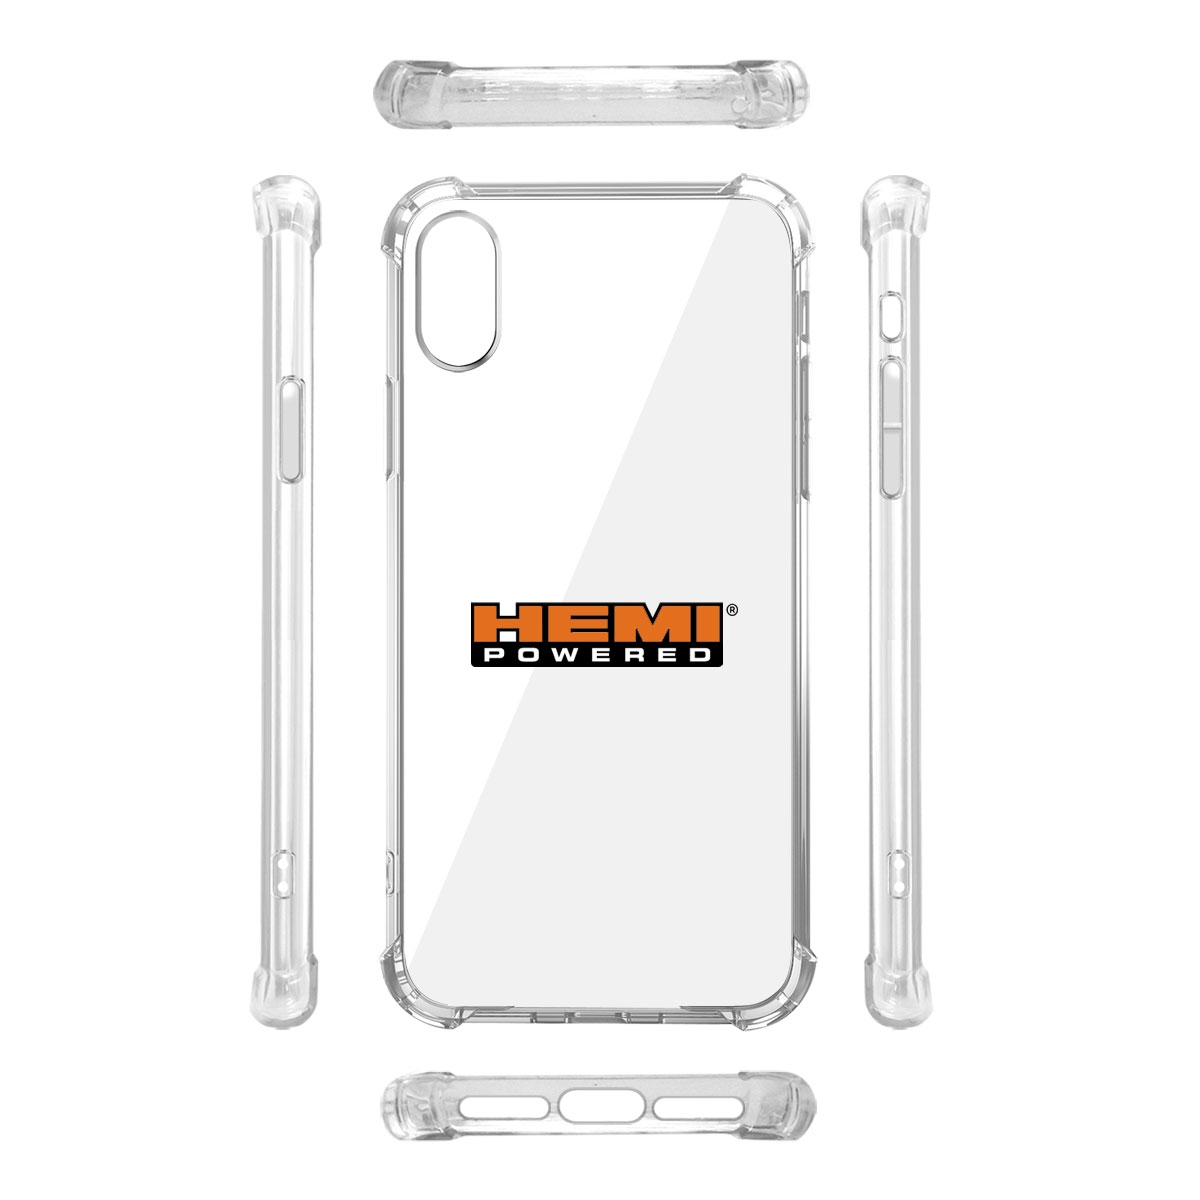 HEMI Powered iPhone X Clear TPU Shockproof Cell Phone Case